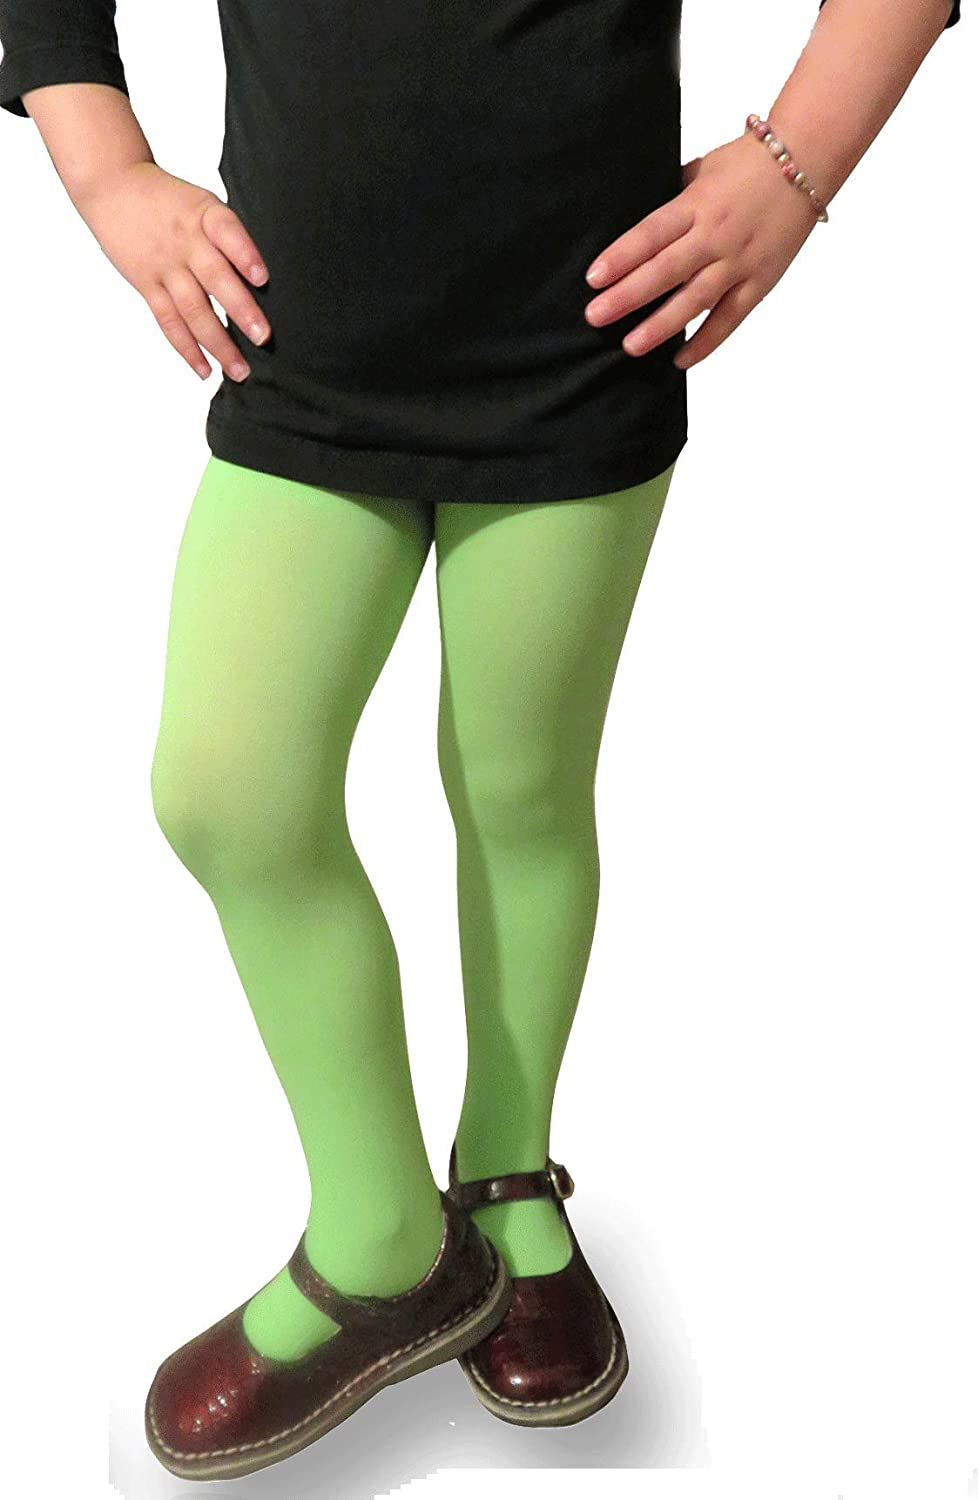 Clips N Grips Girls Microfiber Opaque Colored Tights Fashion